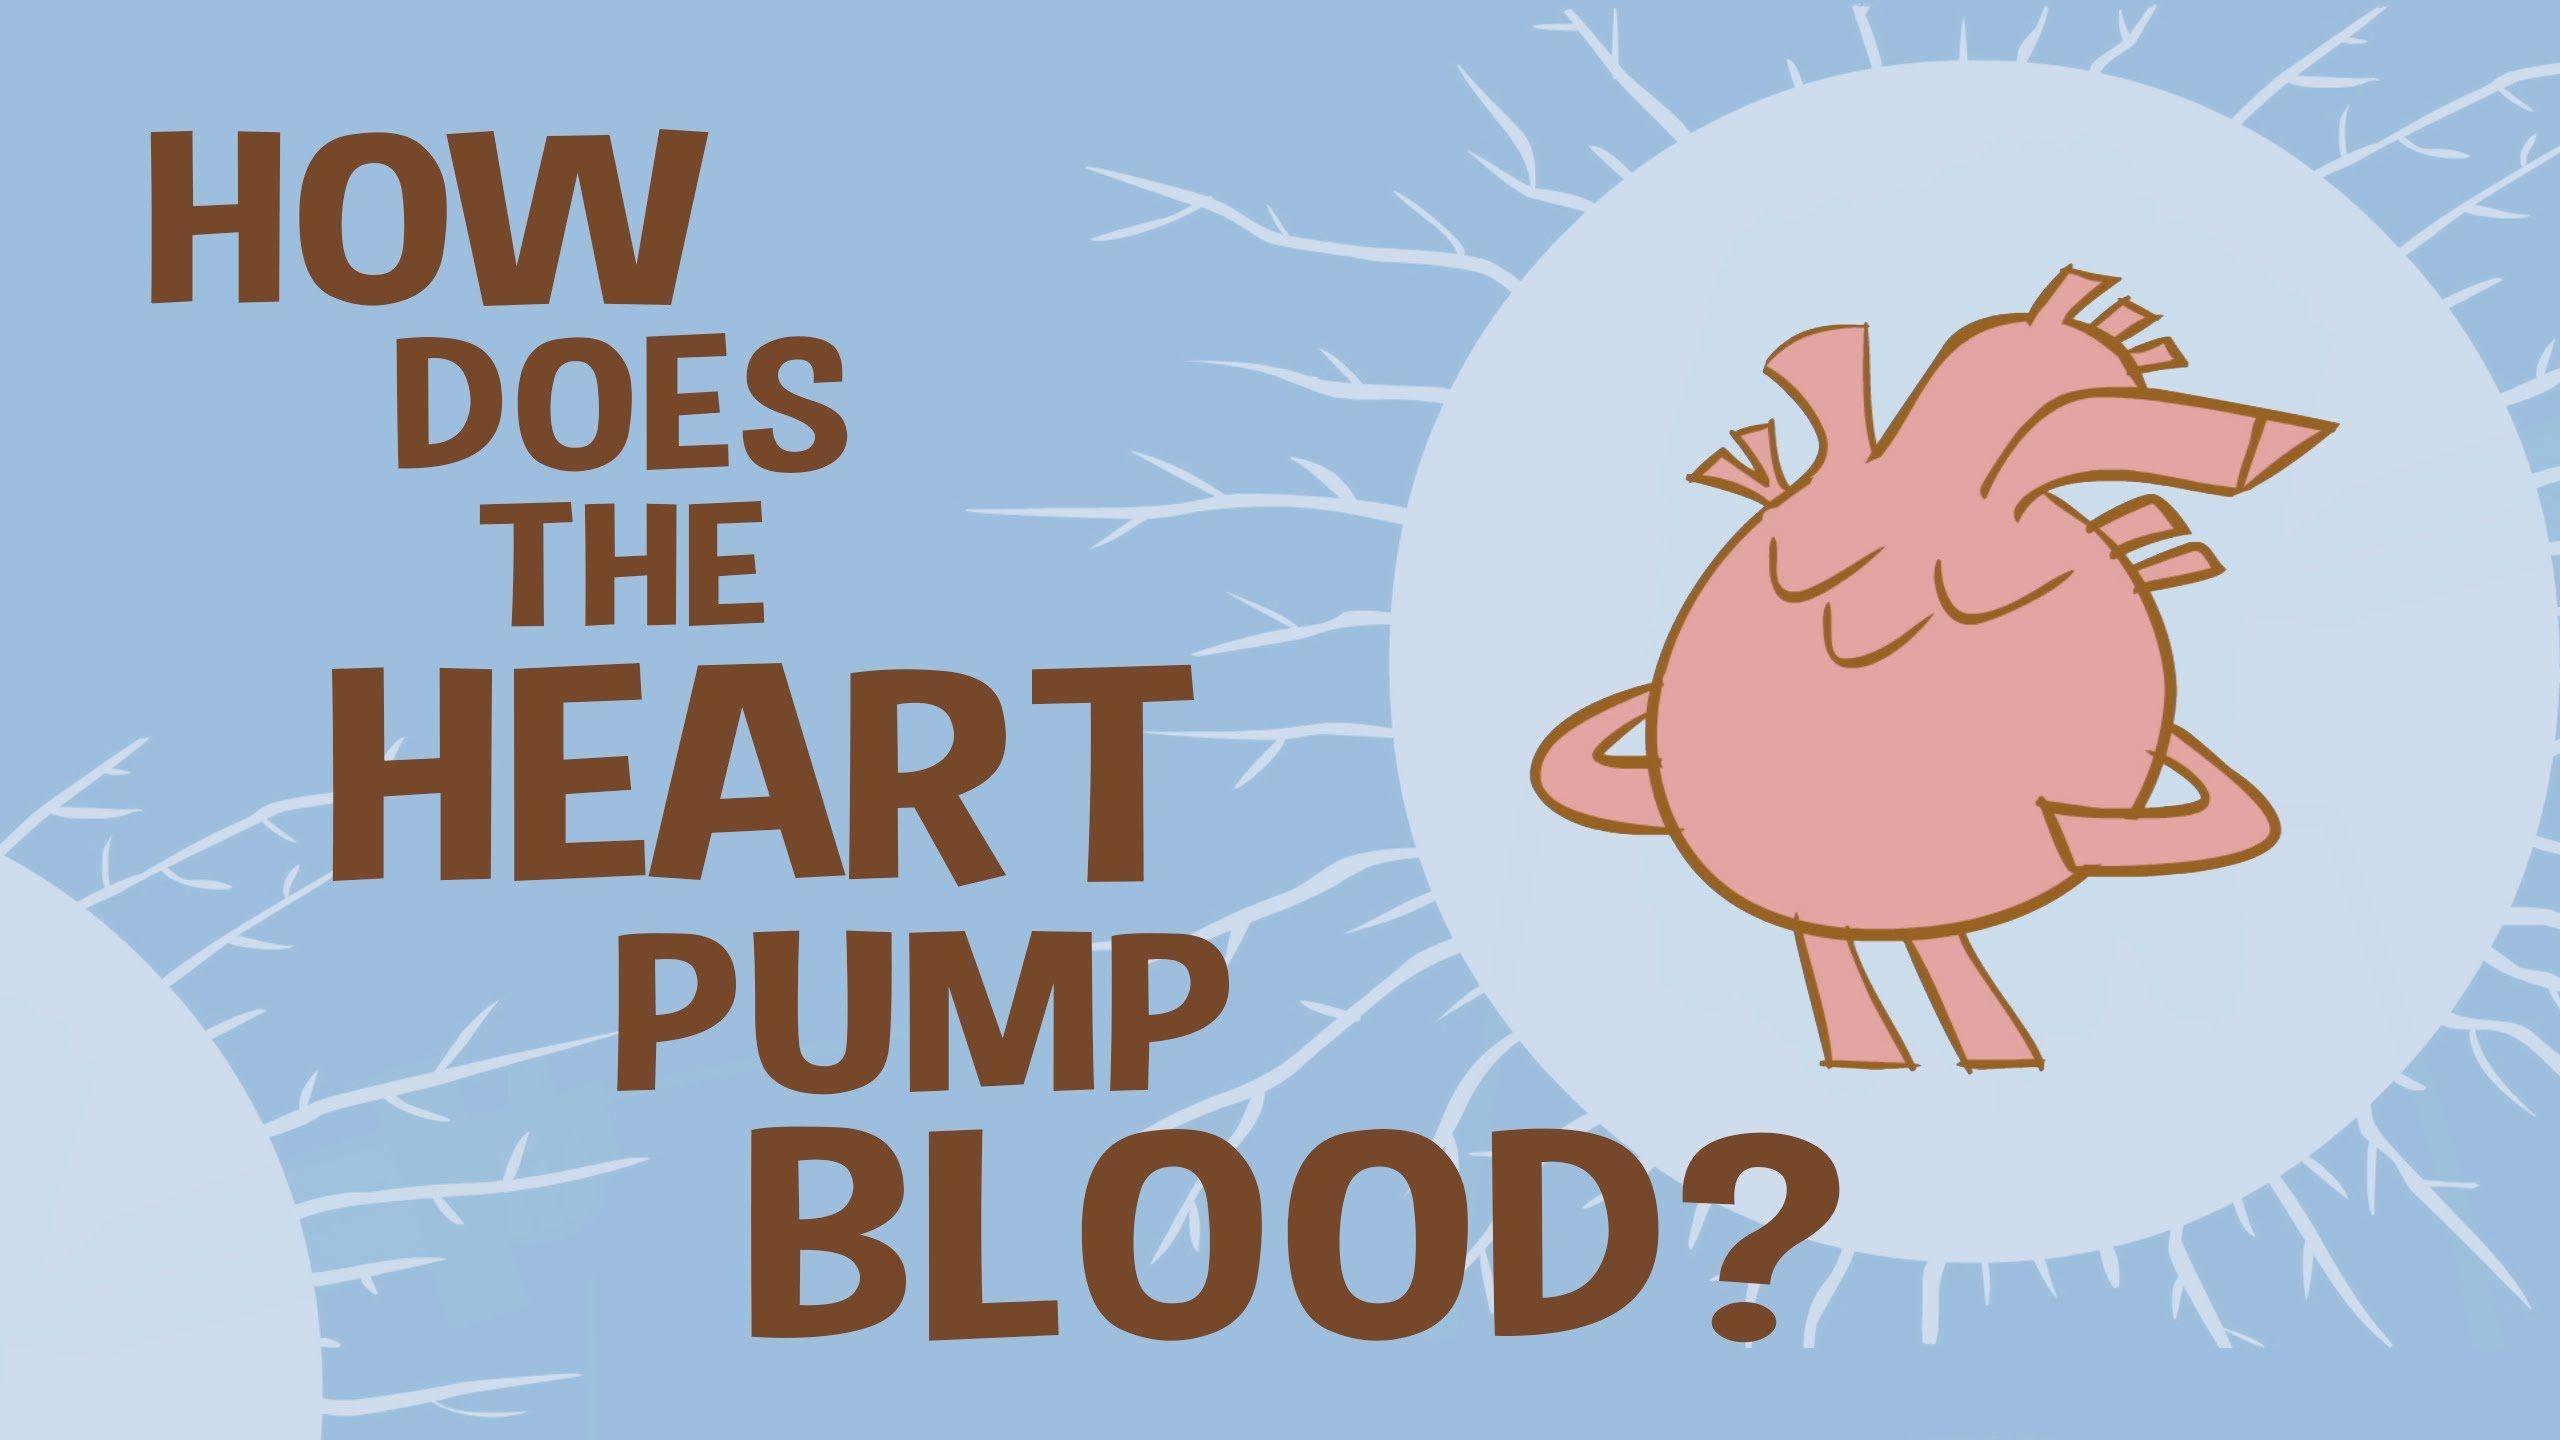 Ted Ed Animation Explains How The Human Heart Works